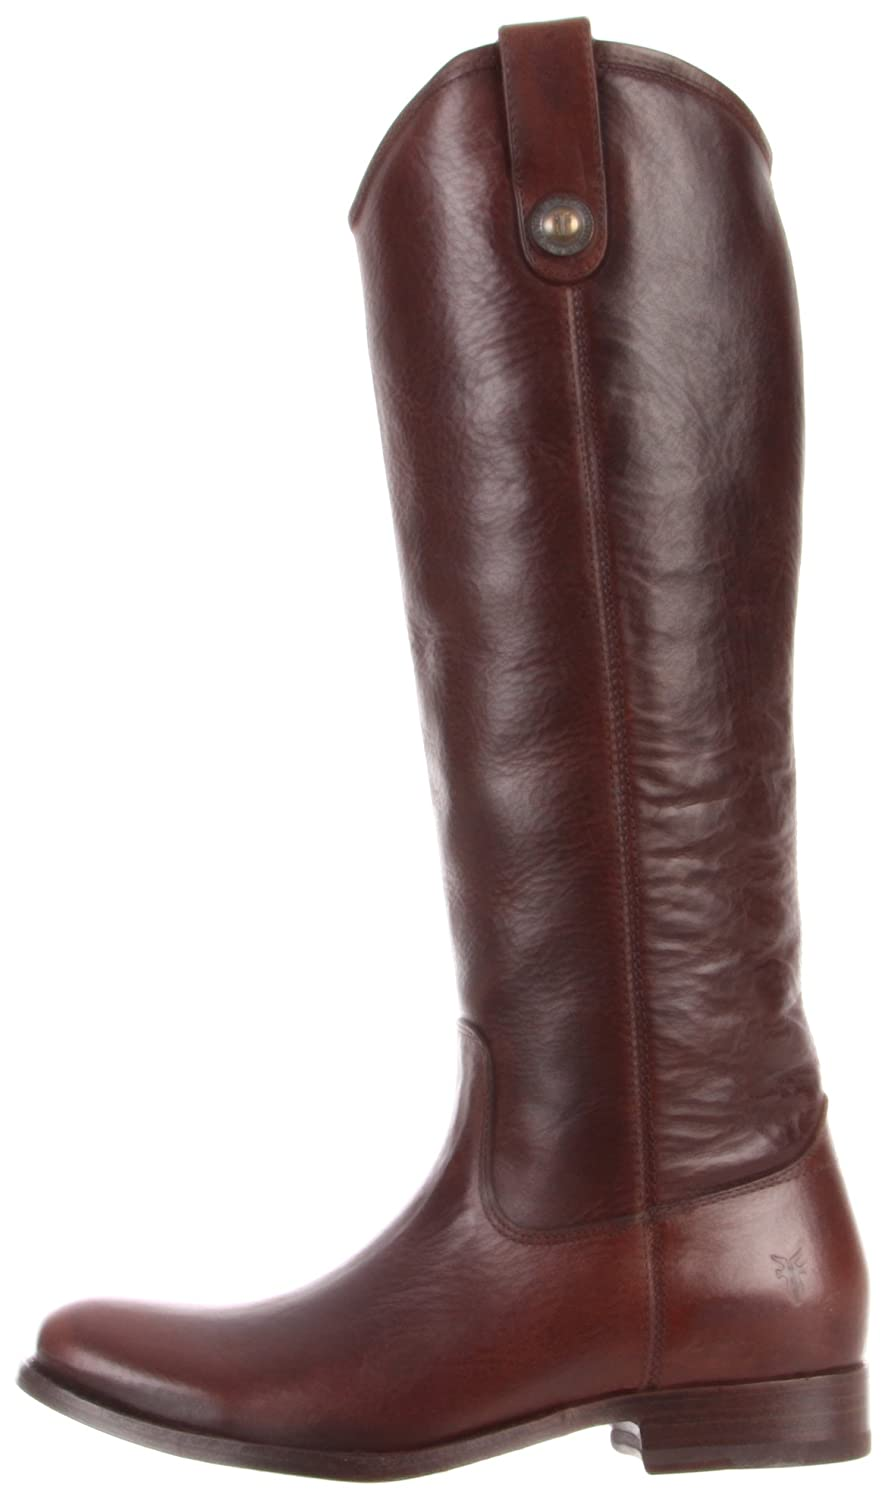 ec25ee7a282 Frye Women s Melissa Button Boot Dark Brown Riding Boot 77167 6 UK   Amazon.co.uk  Shoes   Bags